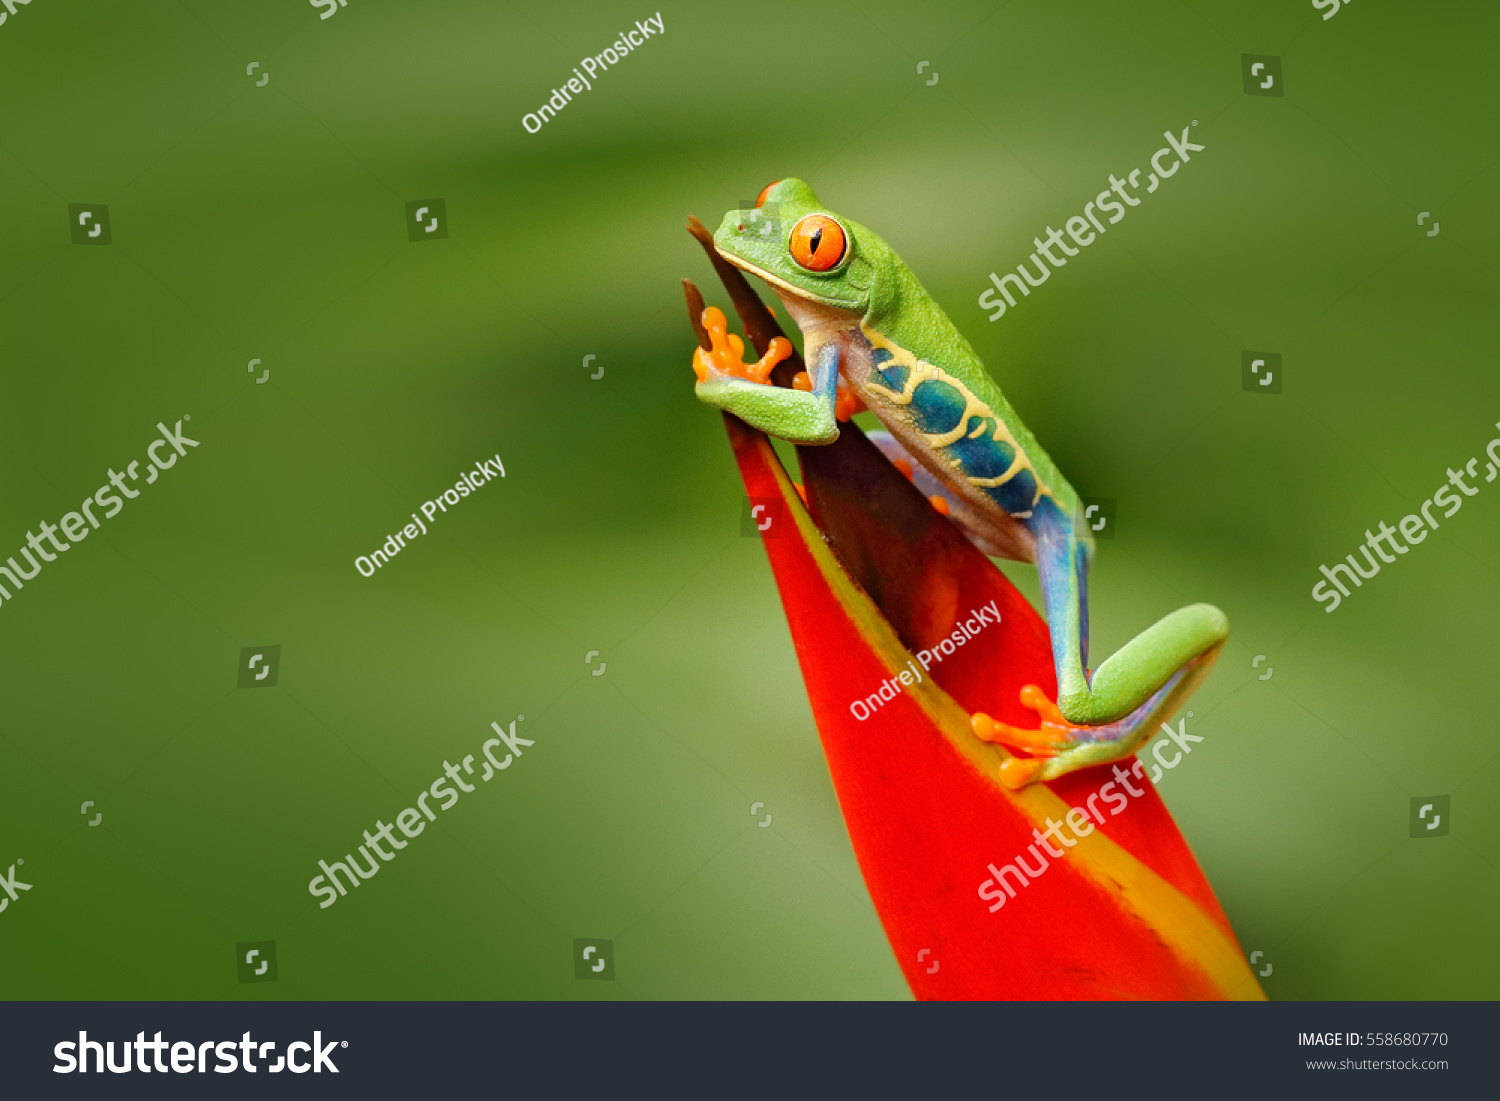 Red-eyed Tree Frog, Agalychnis callidryas, animal with big red eyes, in the nature habitat, Costa Rica. Beautiful frog in forest, exotic animal from central America. #558680770